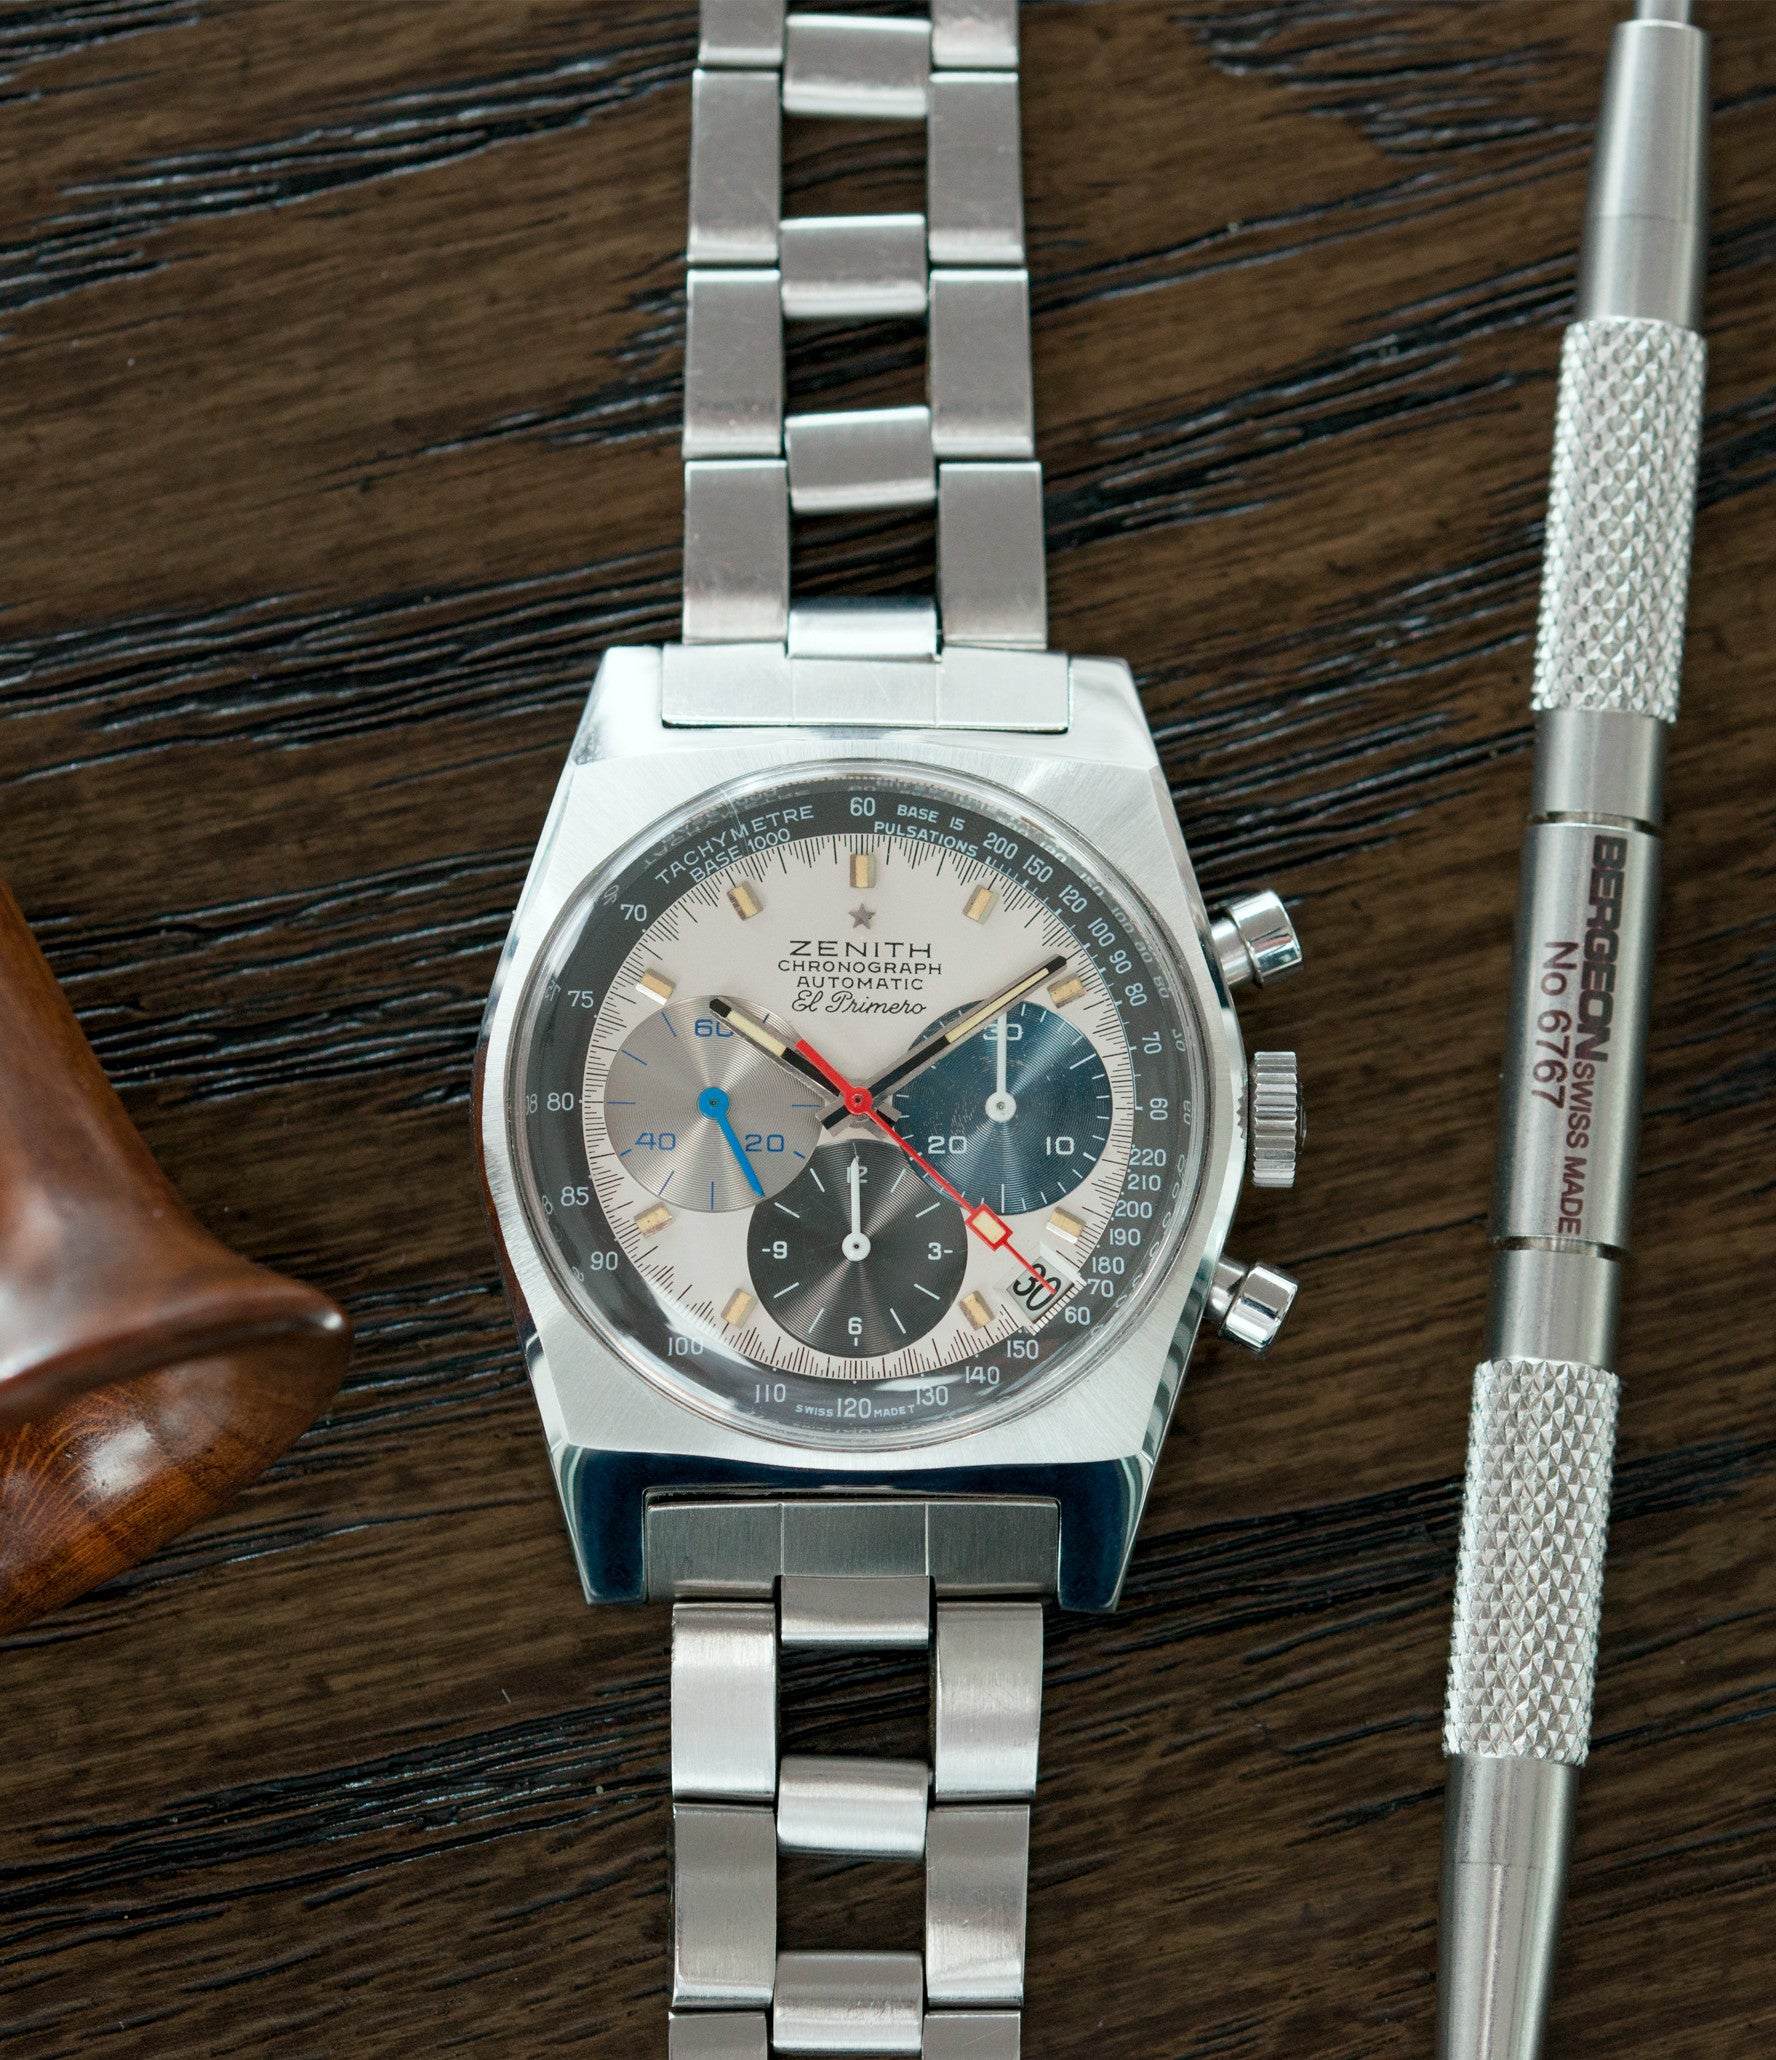 selling vintage Zenith El Primero A3817 steel automatic chronograph watch for sale online at A Collected Man vintage rare watch specialist